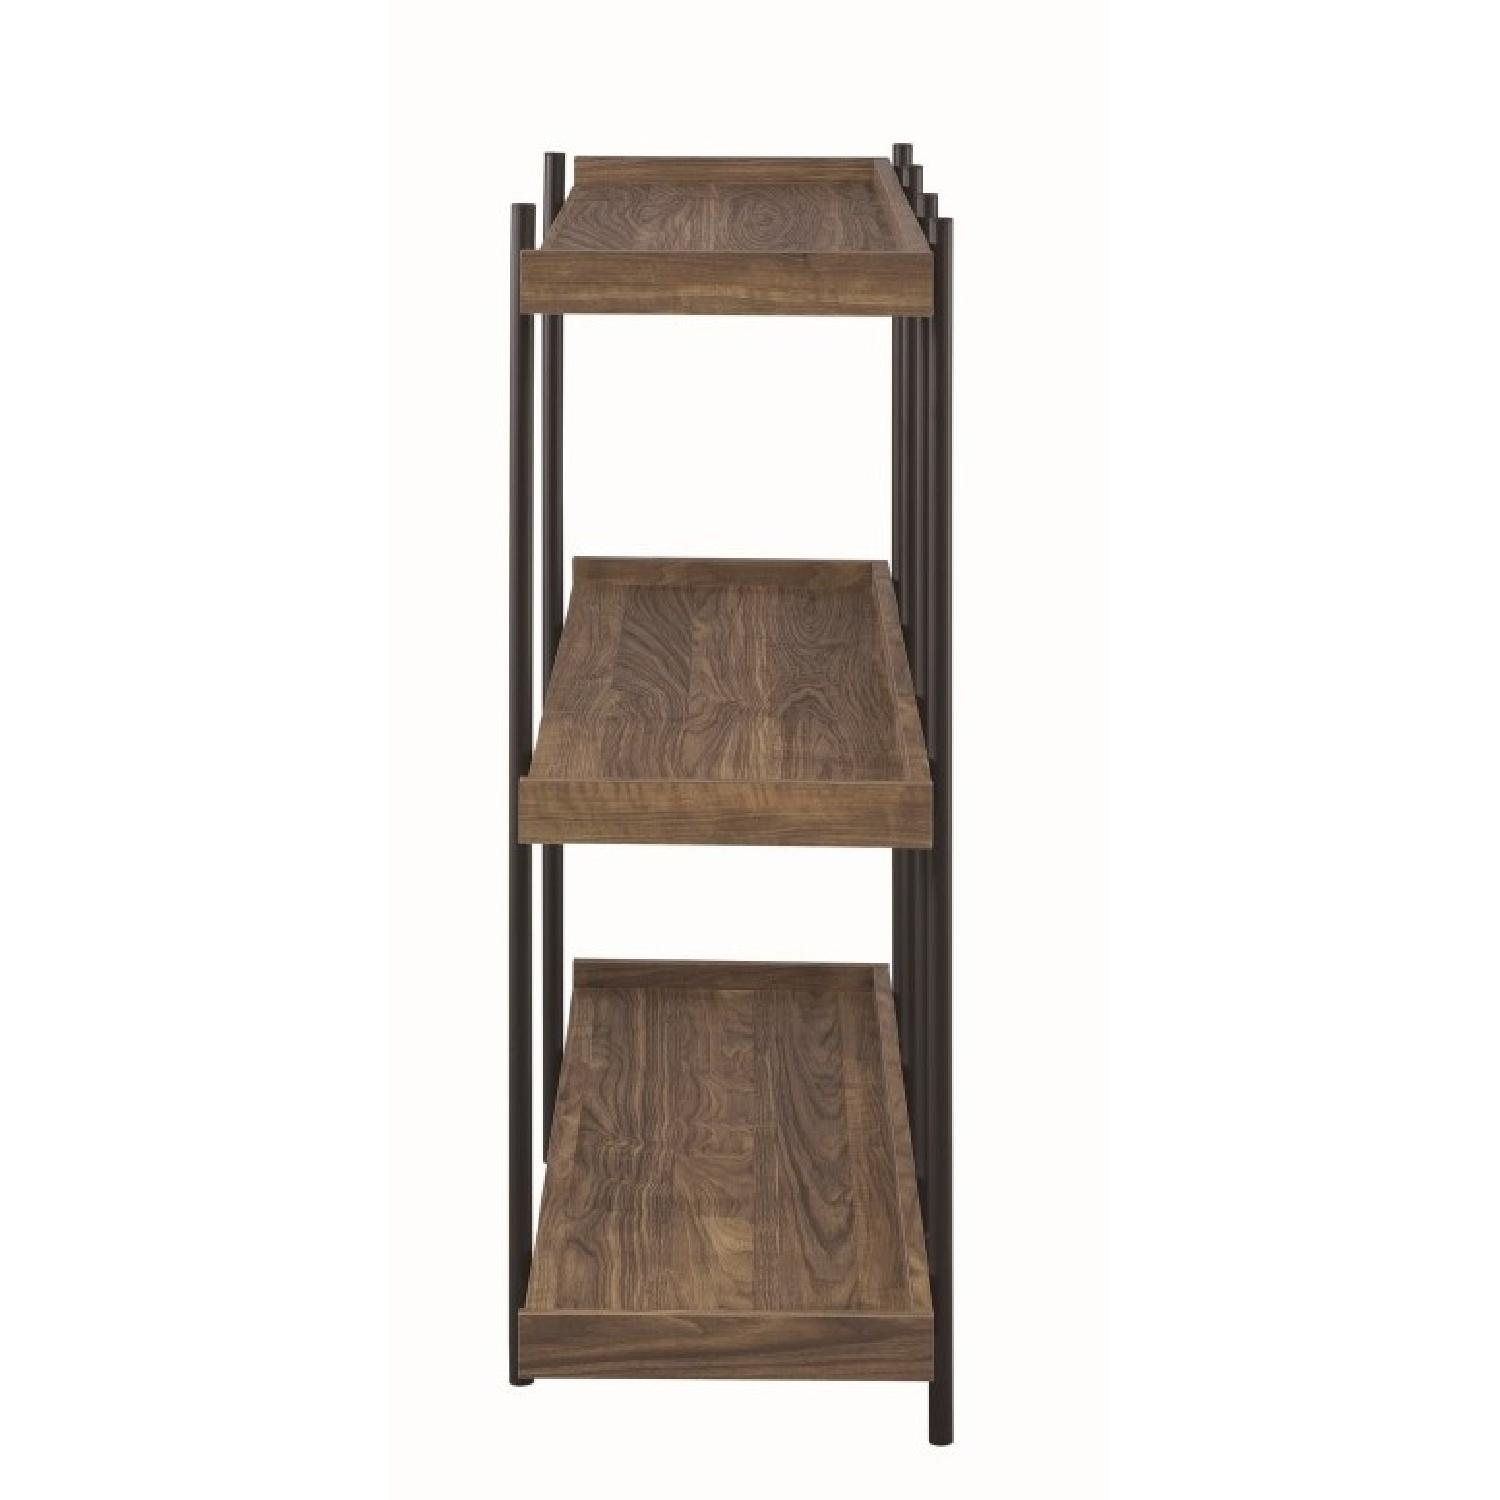 Industrial Style 5-Shelves Bookcase in Aged Walnut Finish - image-5